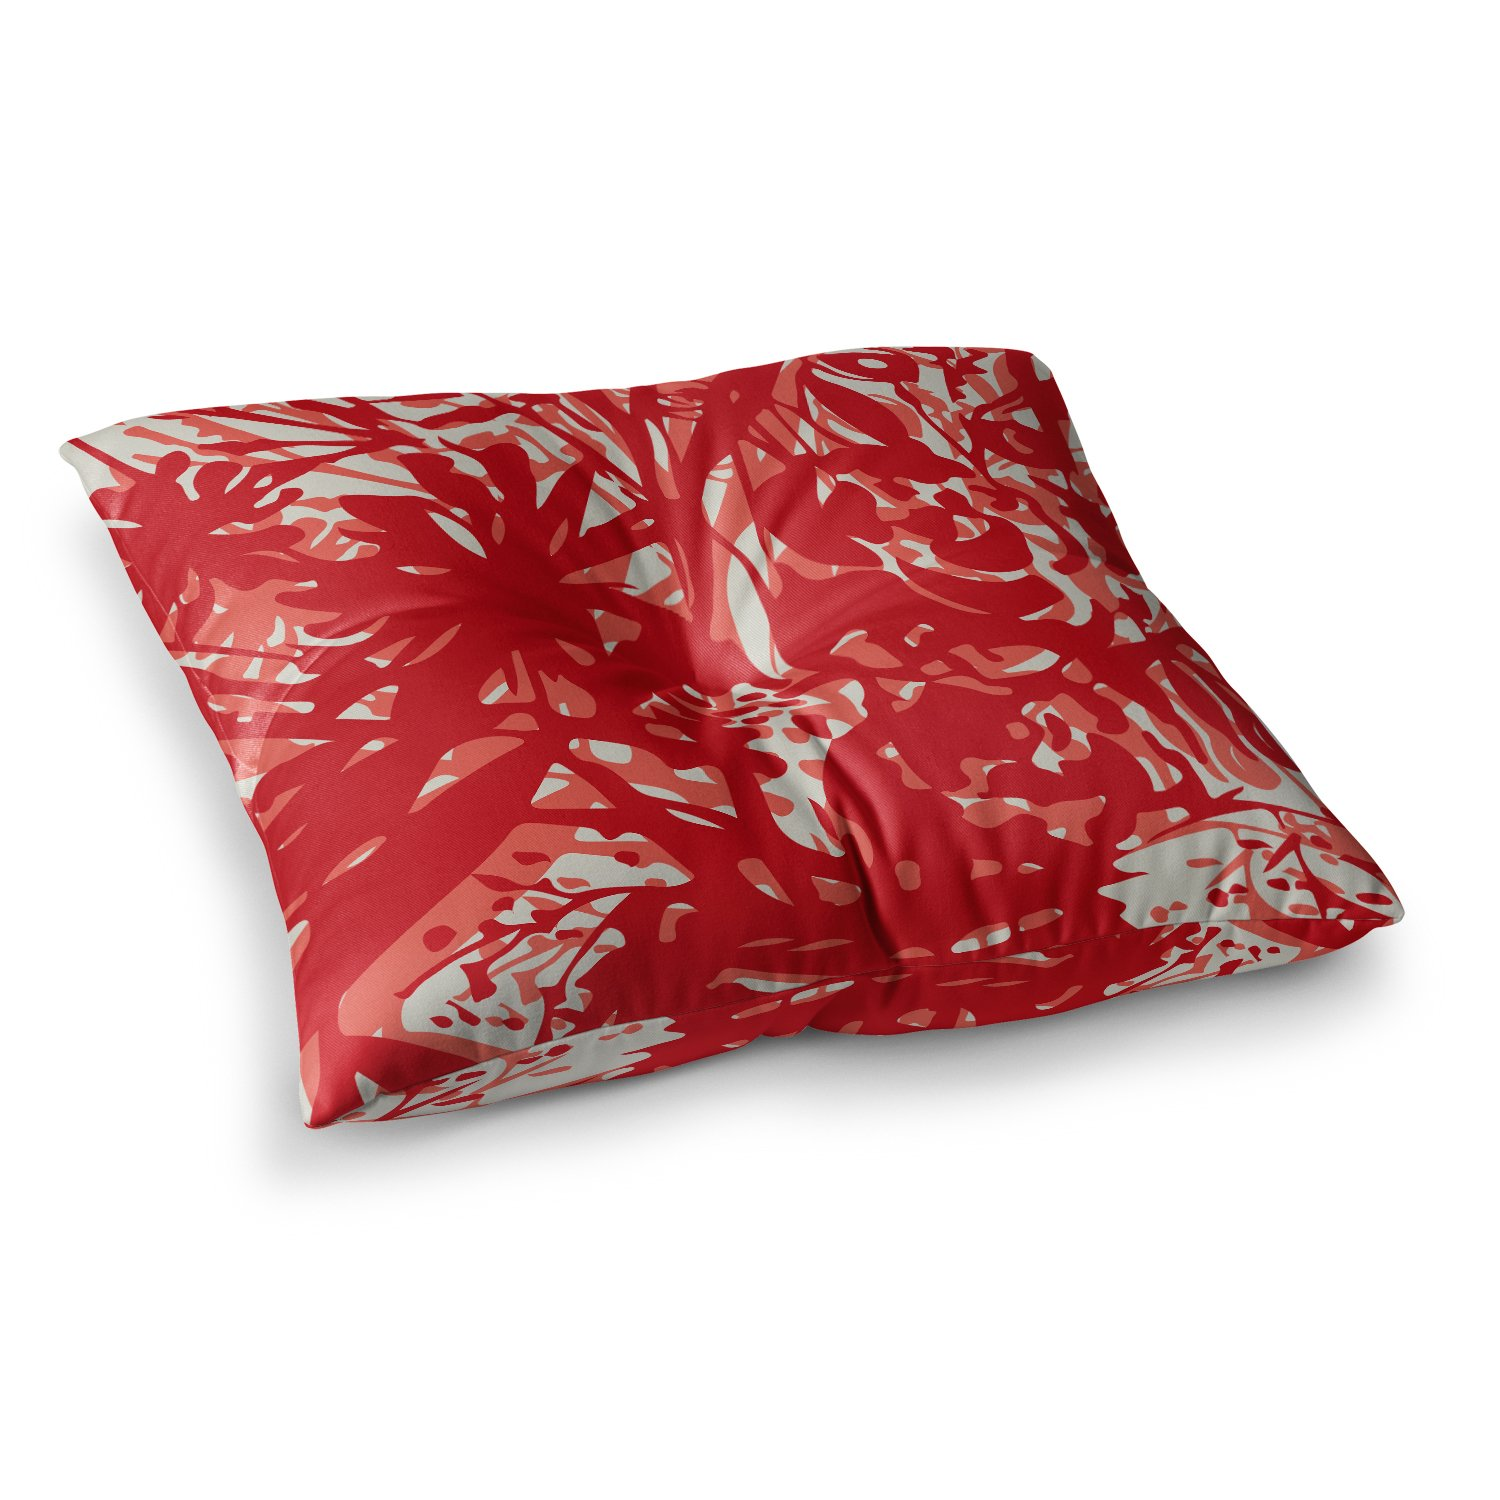 23 x 23 Square Floor Pillow Kess InHouse Patternmuse Inky Floral Poppy Red Coral Painting